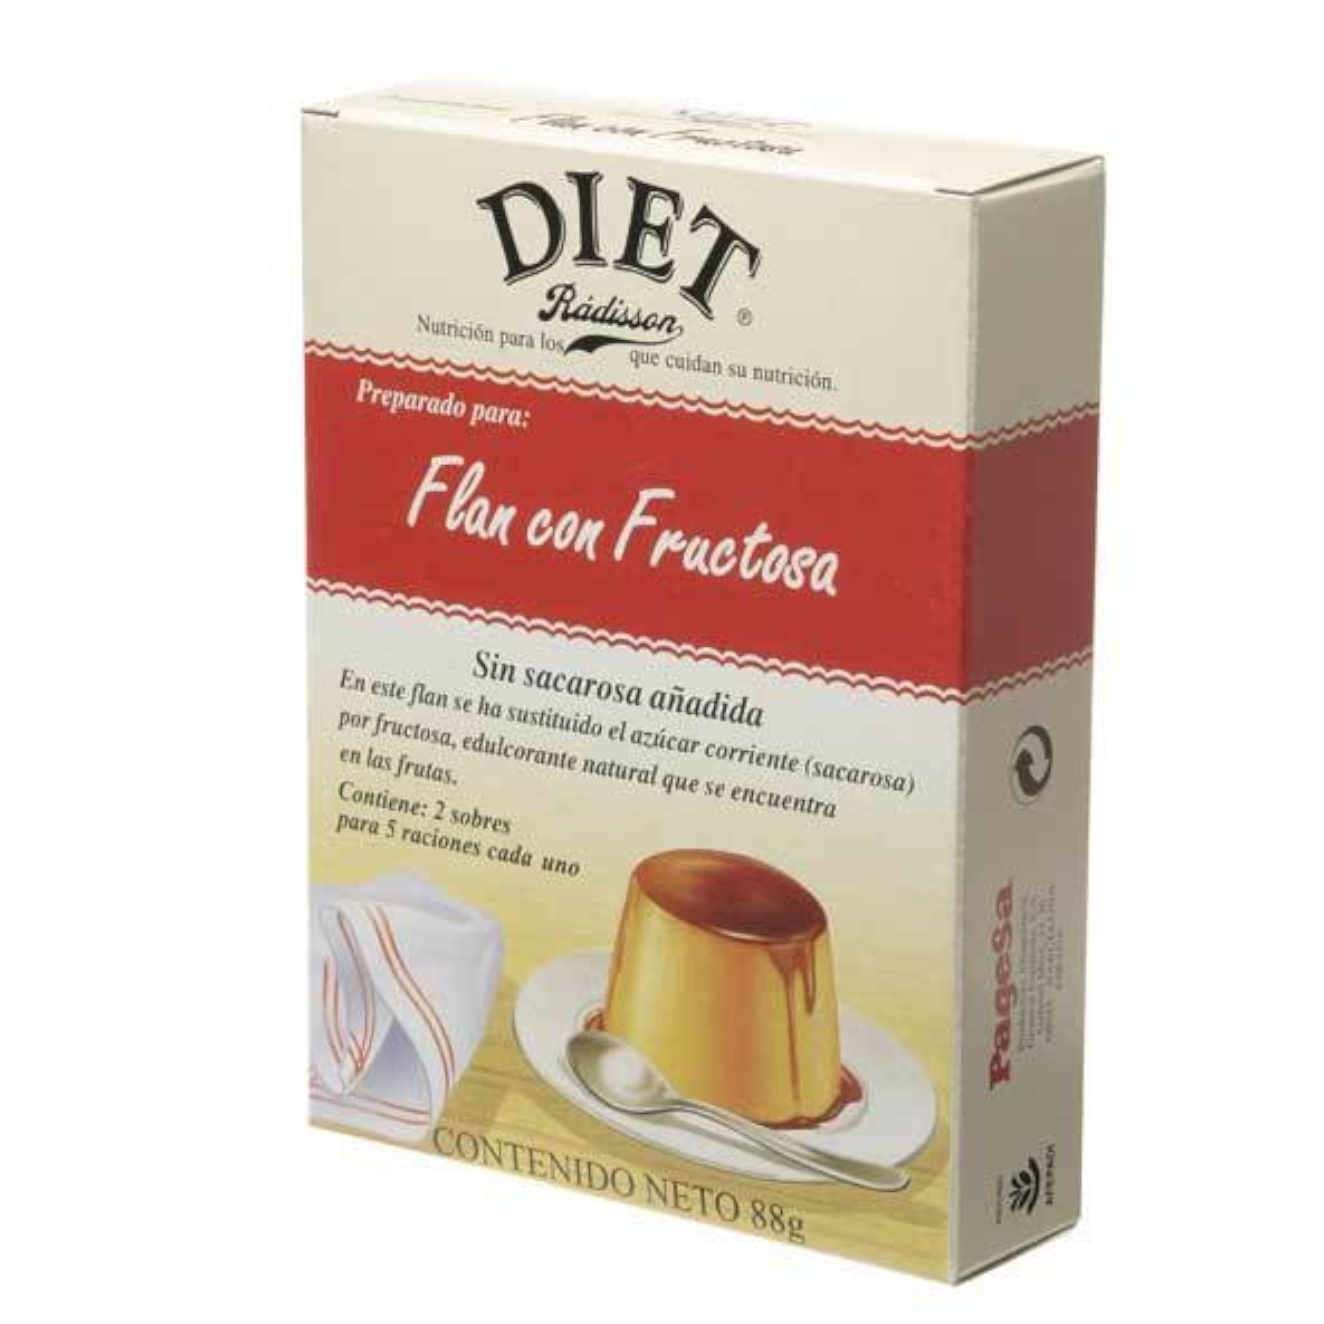 PUDDING MIT FRUCTOSE - 2 x 44 g